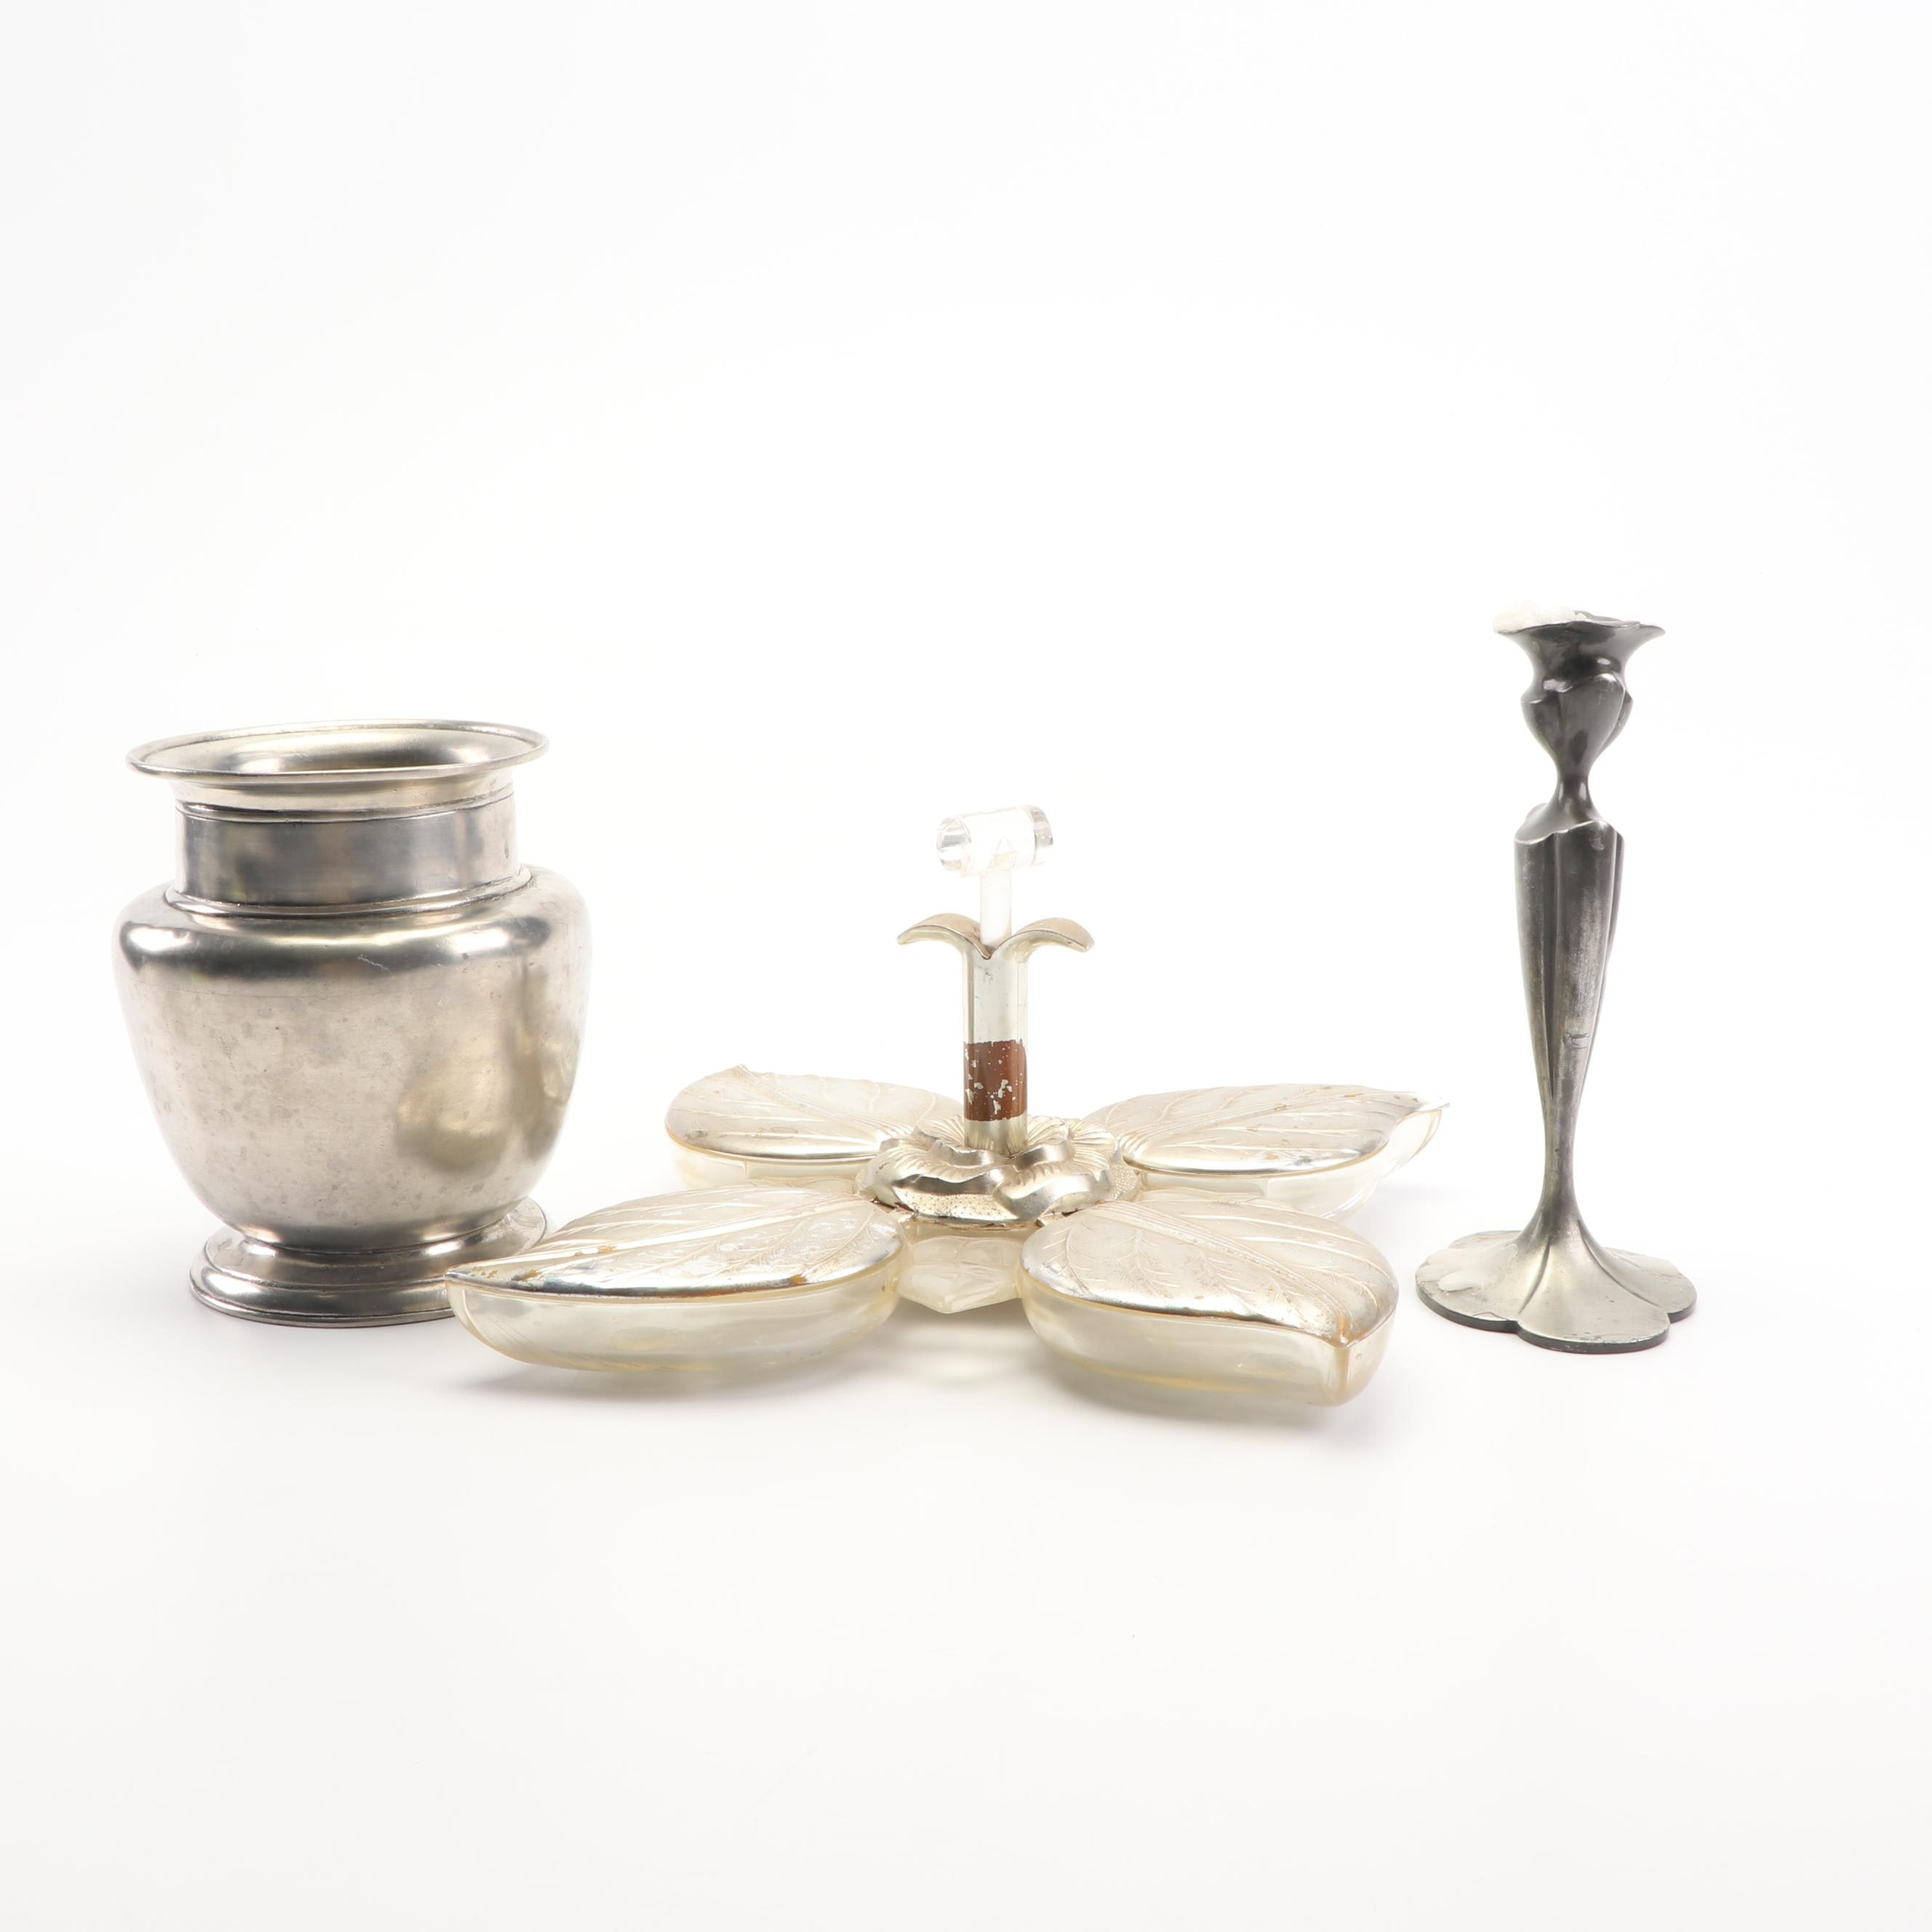 Karoff Acrylic and Metal Tray with Silver Plate Candlestick and Vase